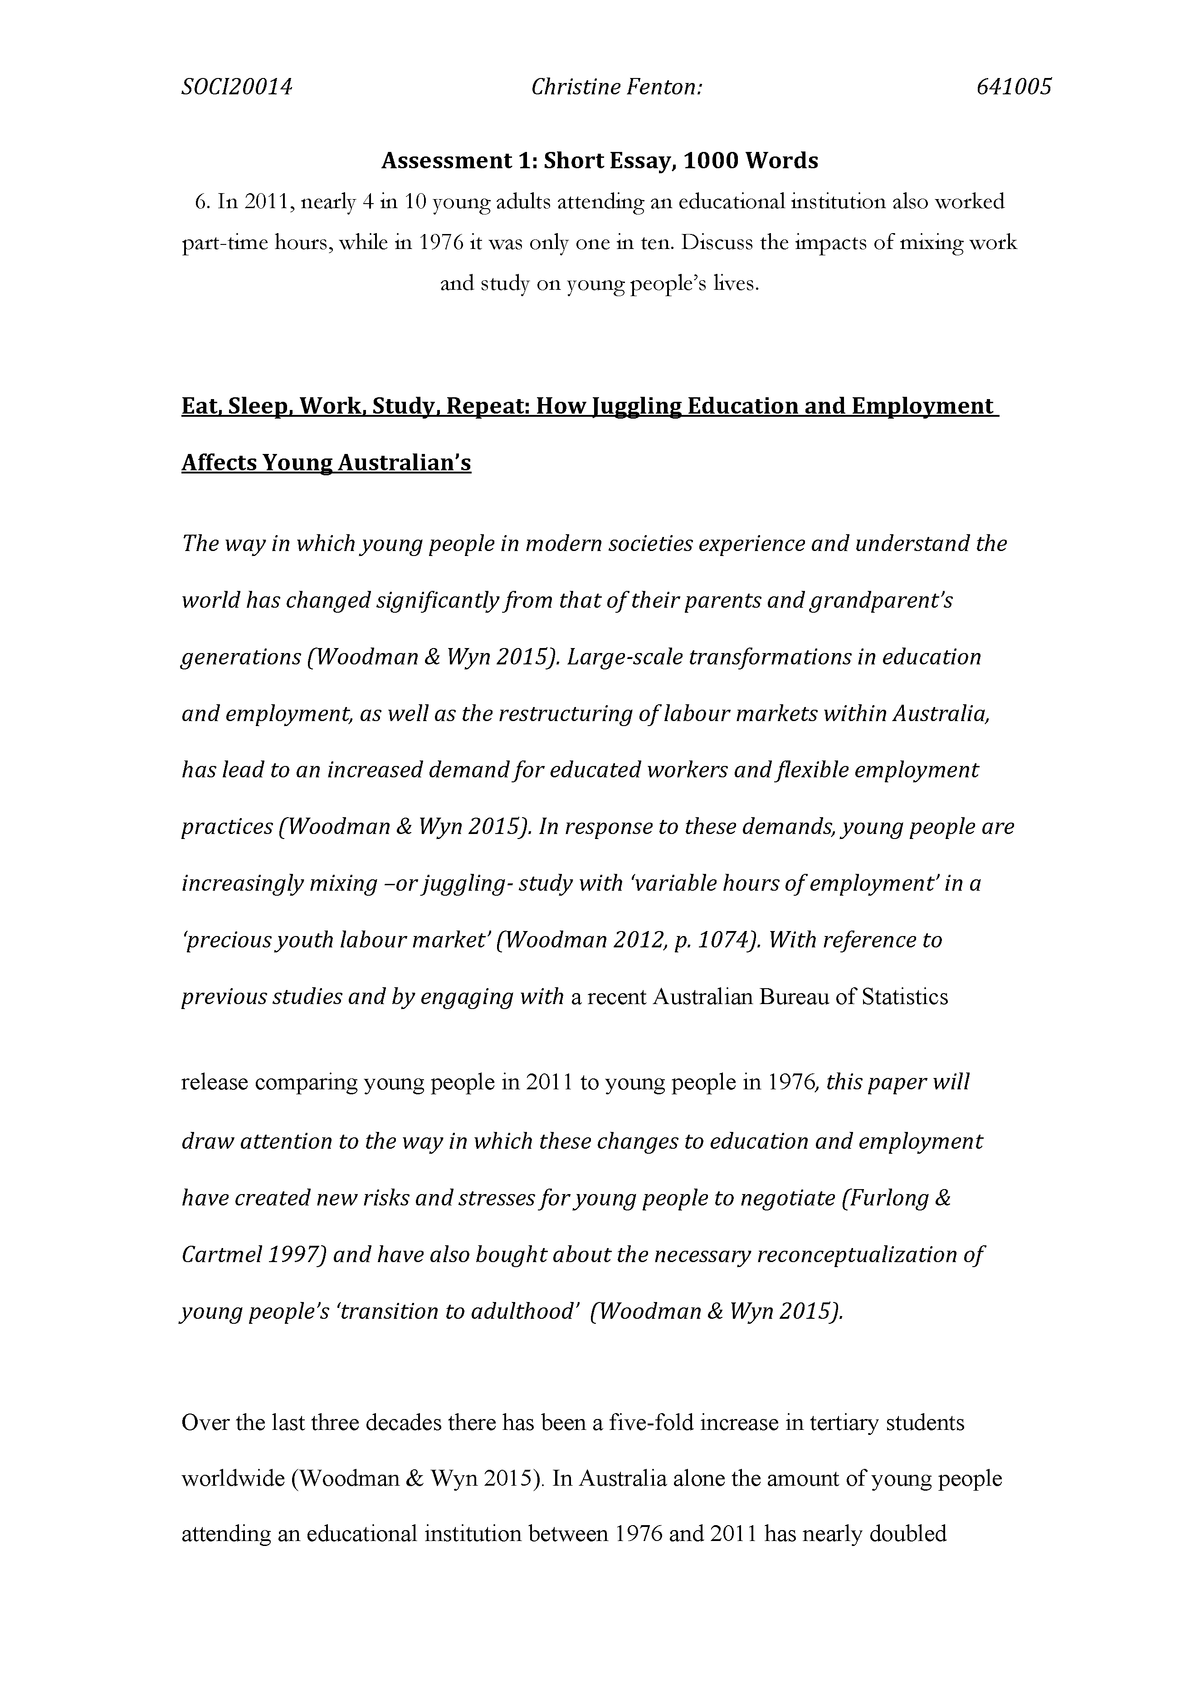 essay how juggling education and employment affects young  essay how juggling education and employment affects young australians     grade ha   soci sociology of youth   studocu